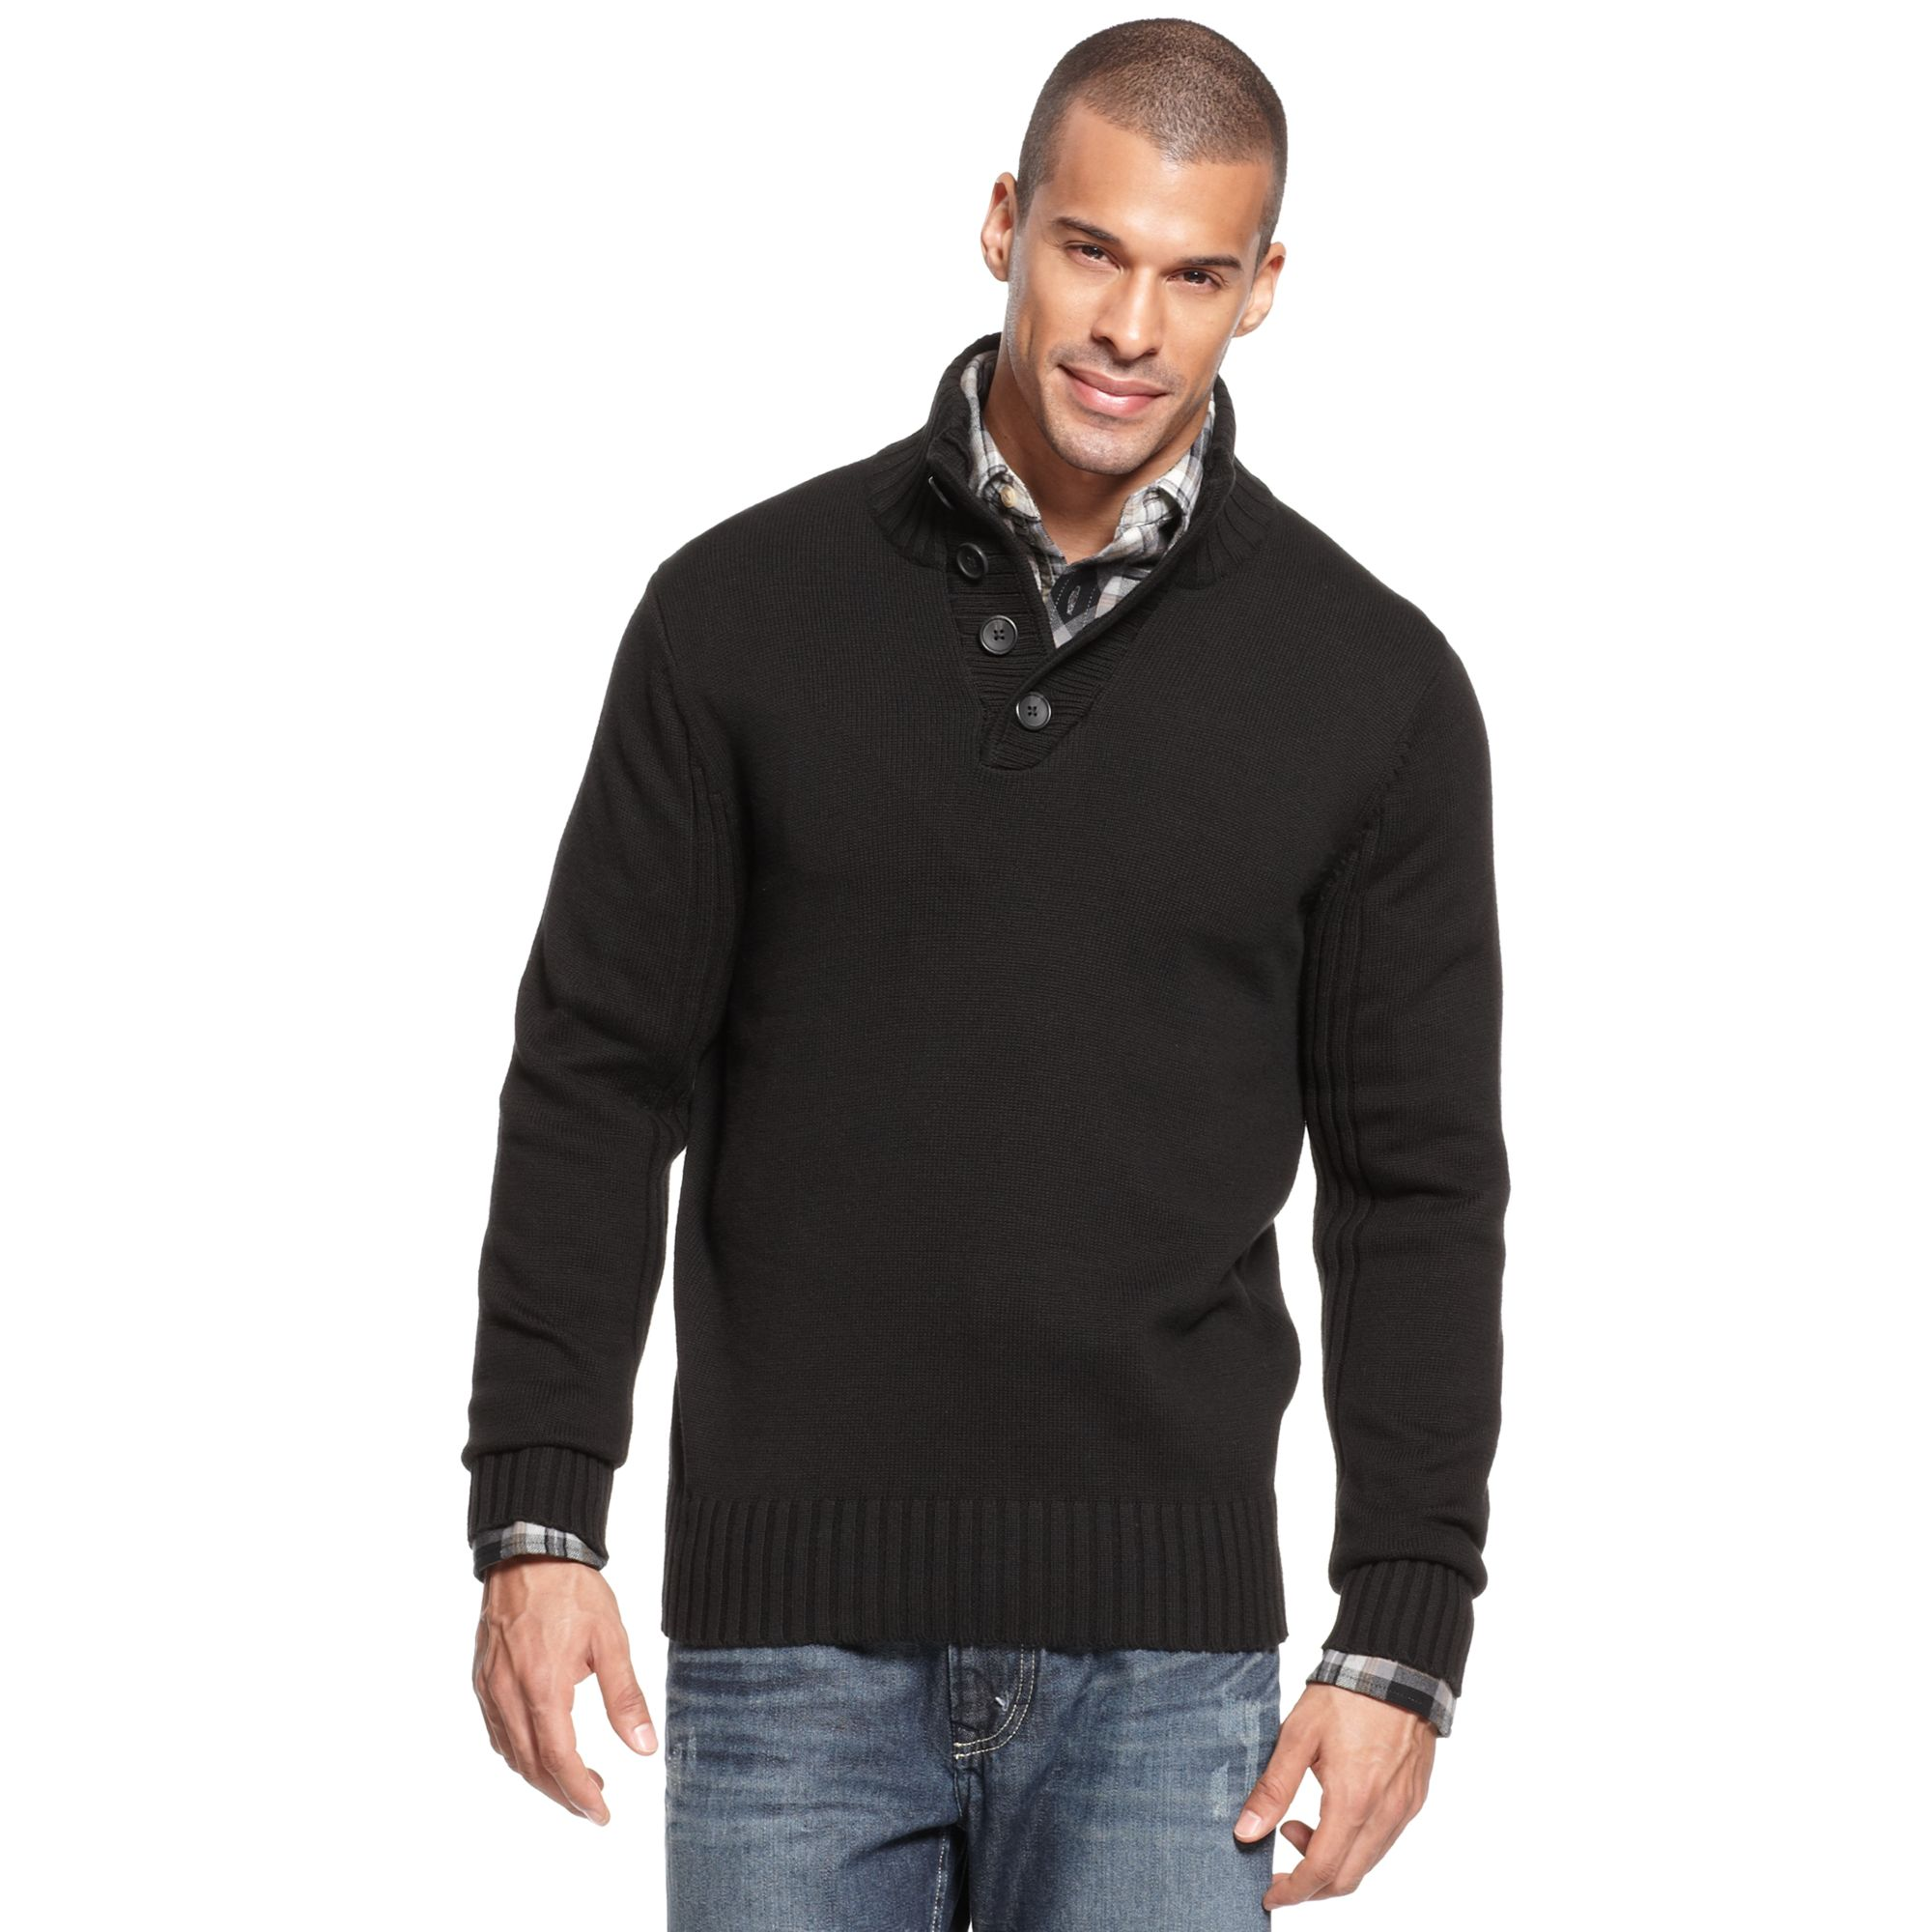 American Eagle Outfitters is the best place to find men's sweaters for every style, every season, every guy. Whether you're looking for sweaters to wear to work, the office, class, or just hanging out with your friends, we have casual cotton sweaters, men's cardigan sweaters, warm pullovers in festive Fair Isle knit prints, and more.